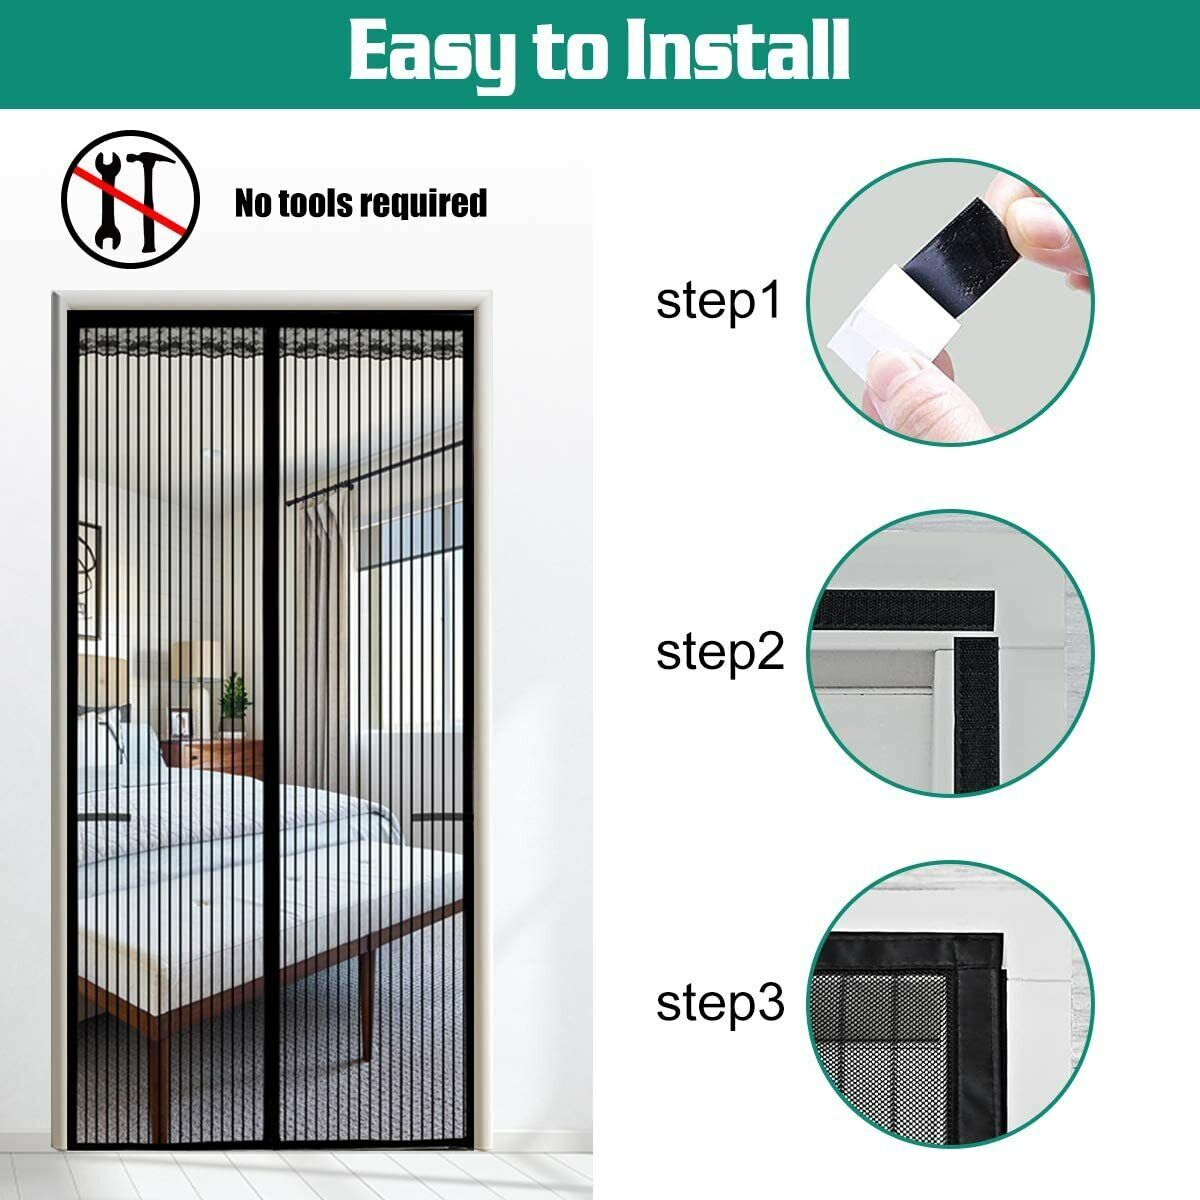 Magnetic Screen Door Heavy Duty Hands-Free Mosquito Mesh Anti Bugs Fly Curtain 10